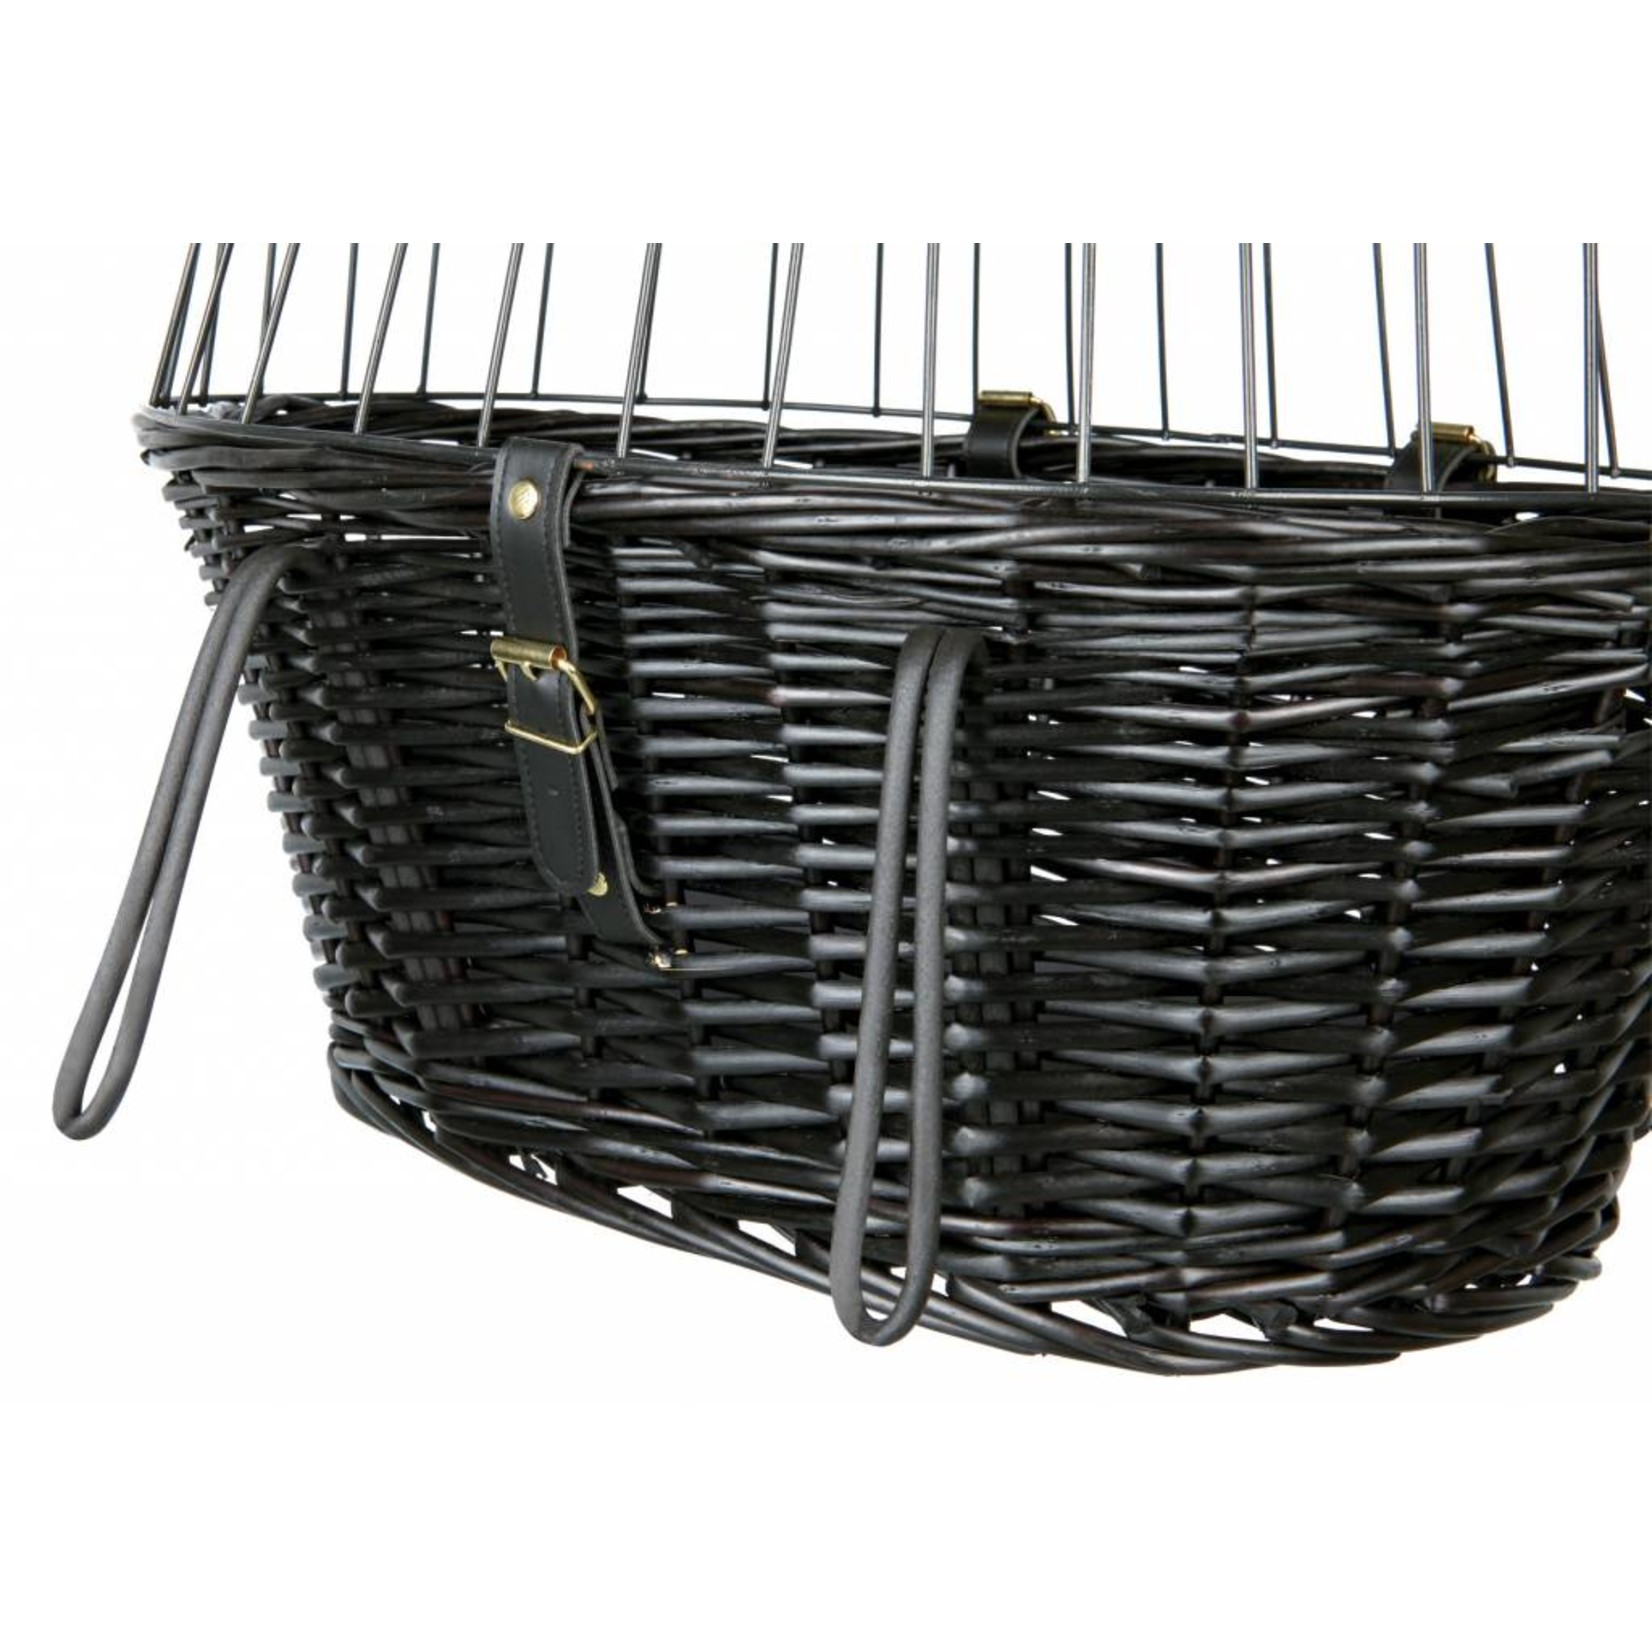 Trixie Willow Bicycle Basket with Wire Mesh Lid, Black, 50 x 41 x 35cm